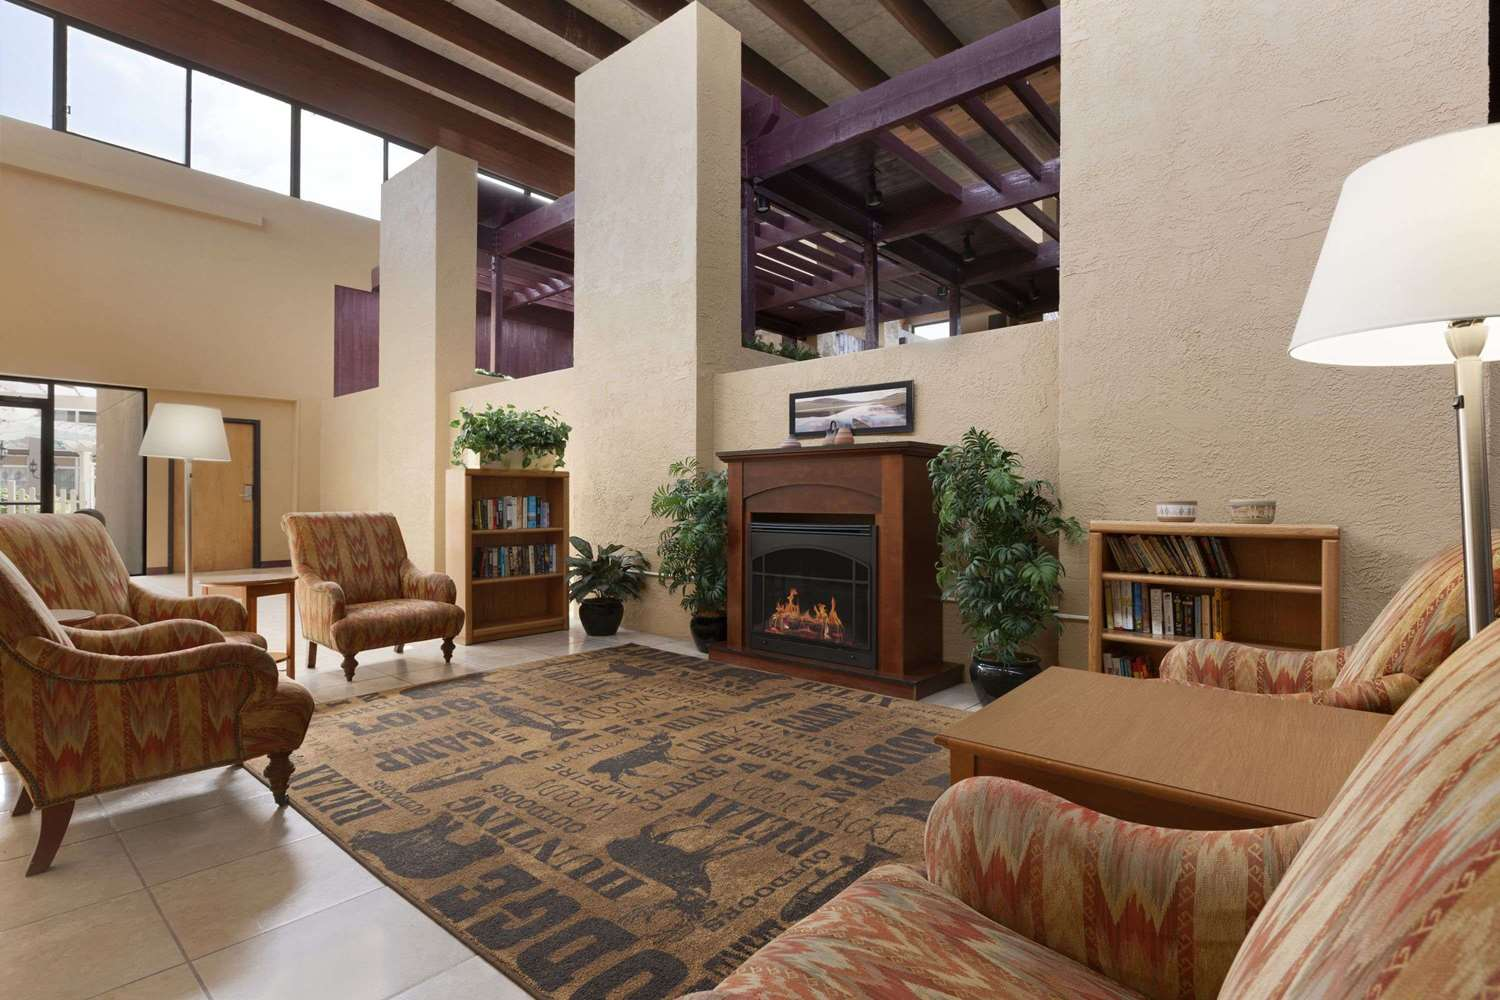 Ramada Plaza Hotel & Conference Center Casper, WY - See Discounts